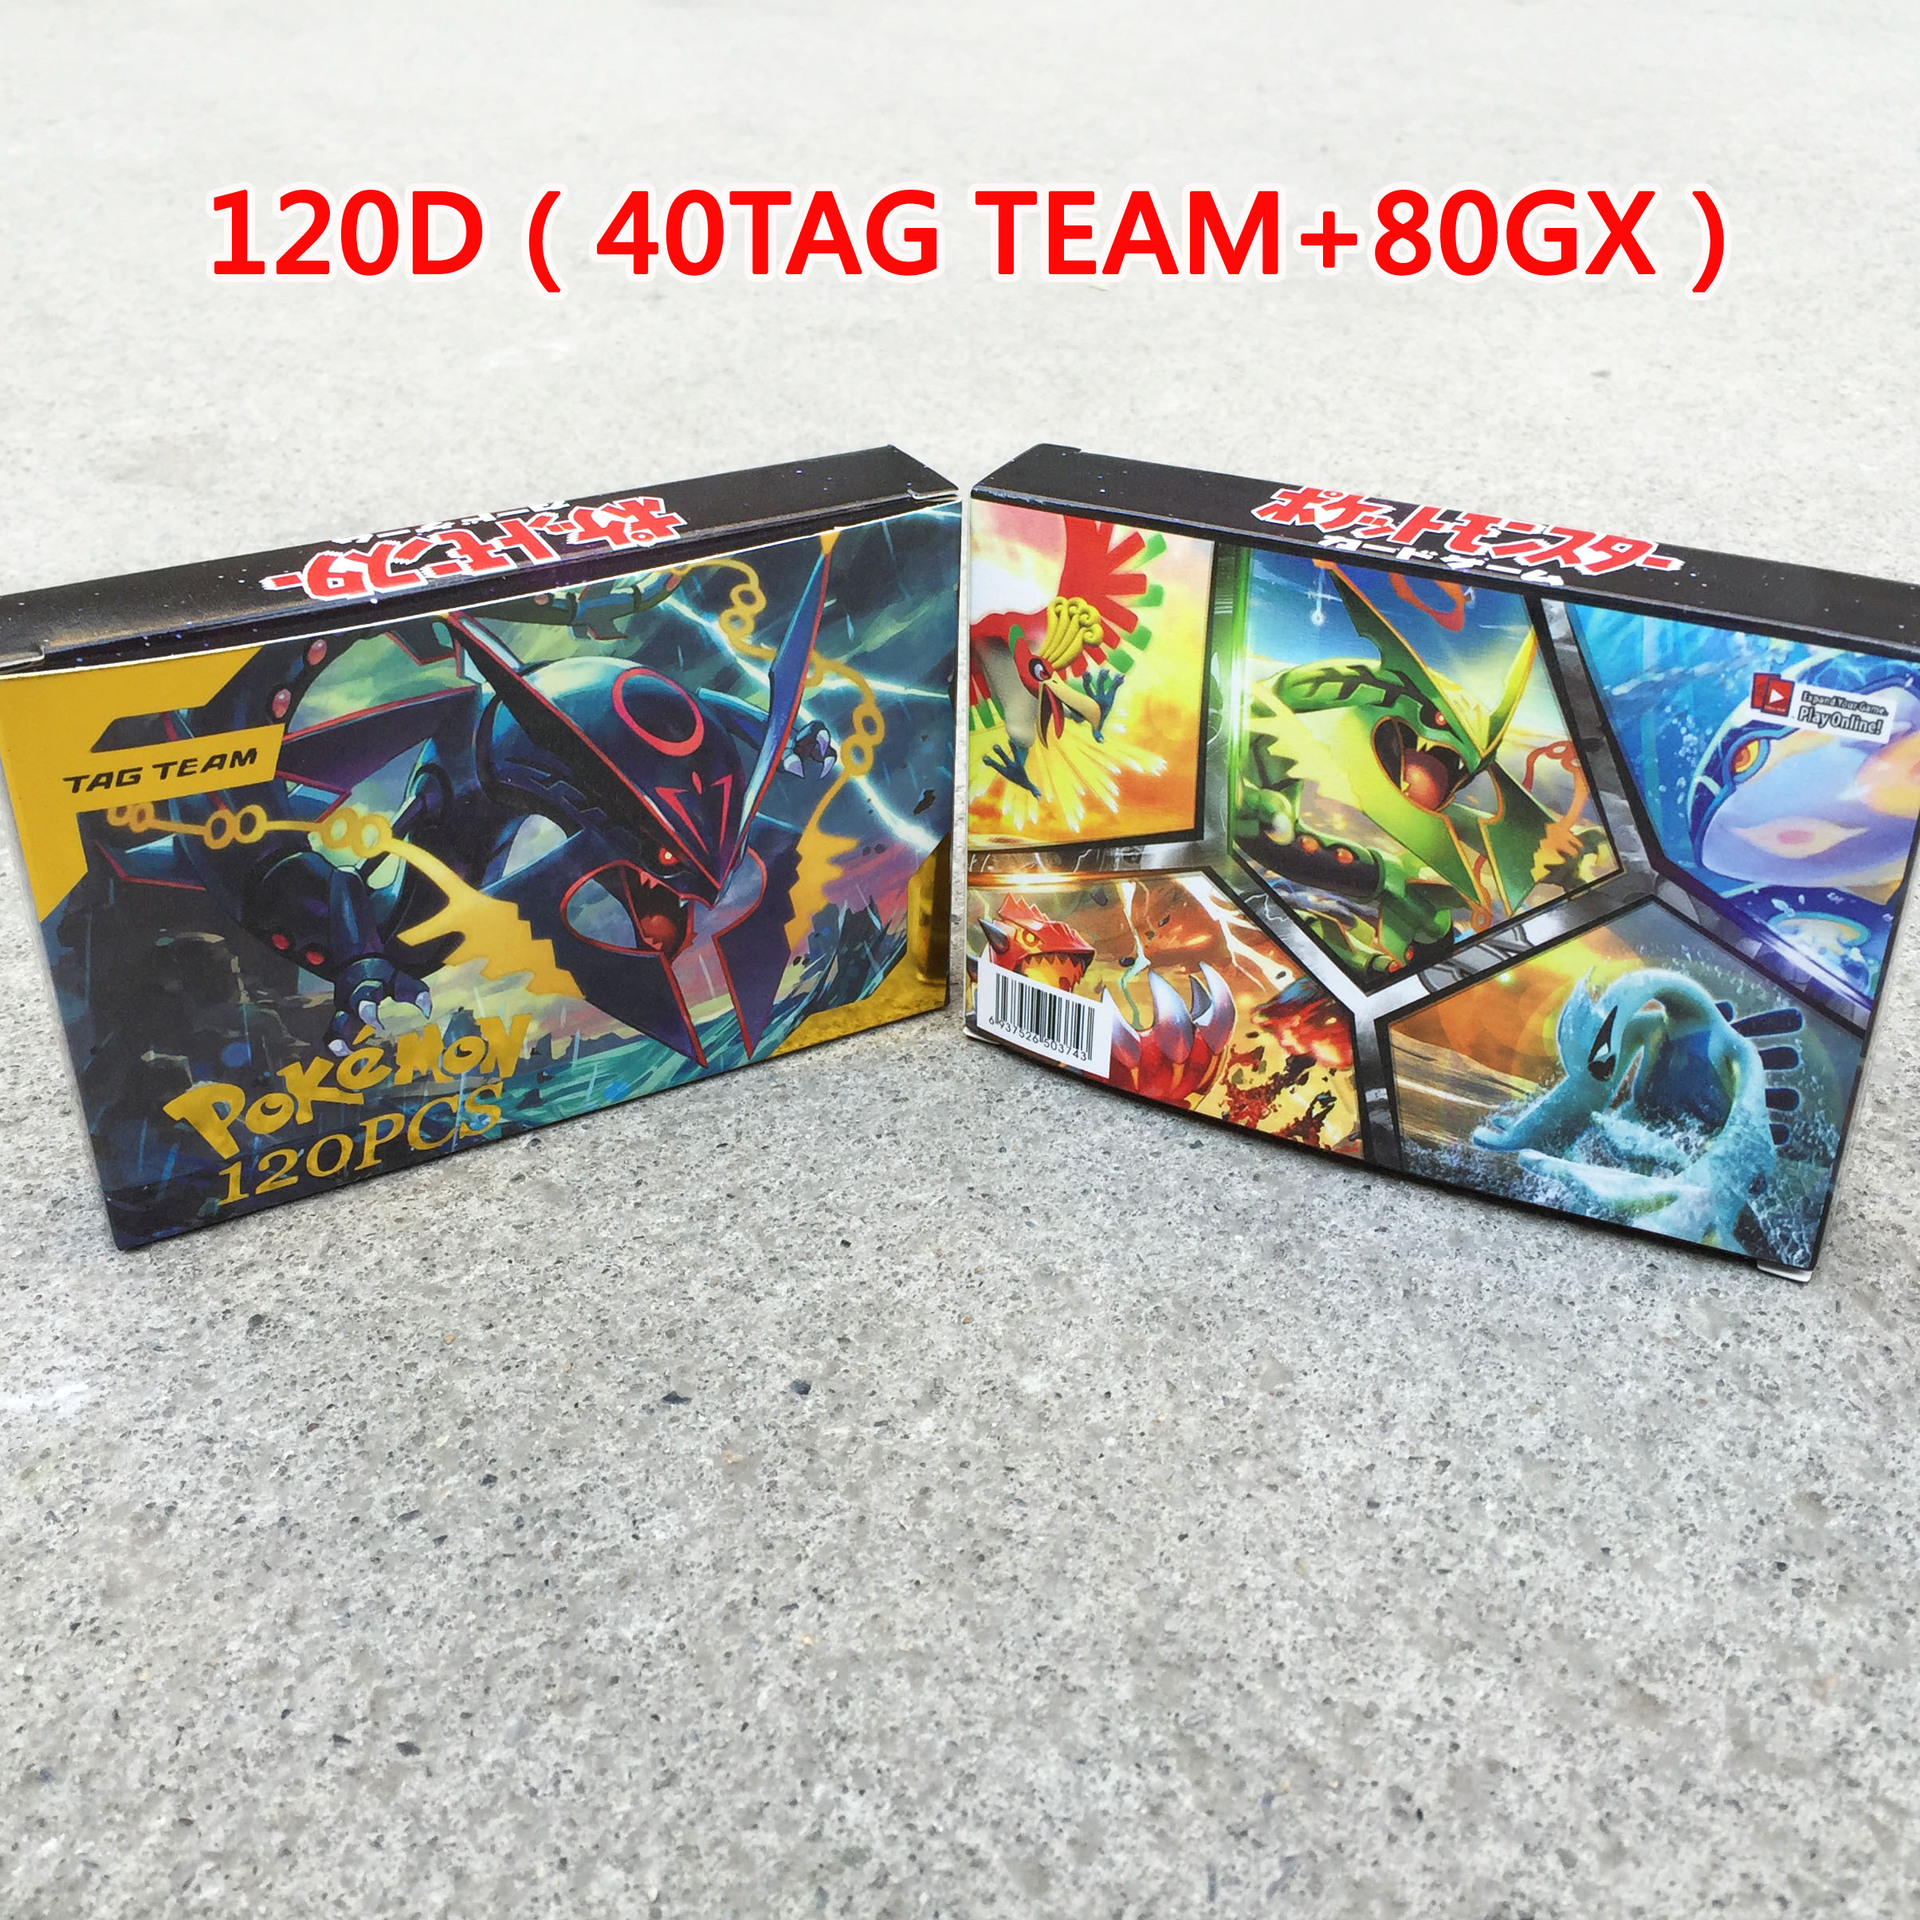 TAKARA TOMY 120pcs Pokemon Tag Team Gx Battle Toys Hobbies Collectibles Game Collection Anime Cards For Children Christmas Gift